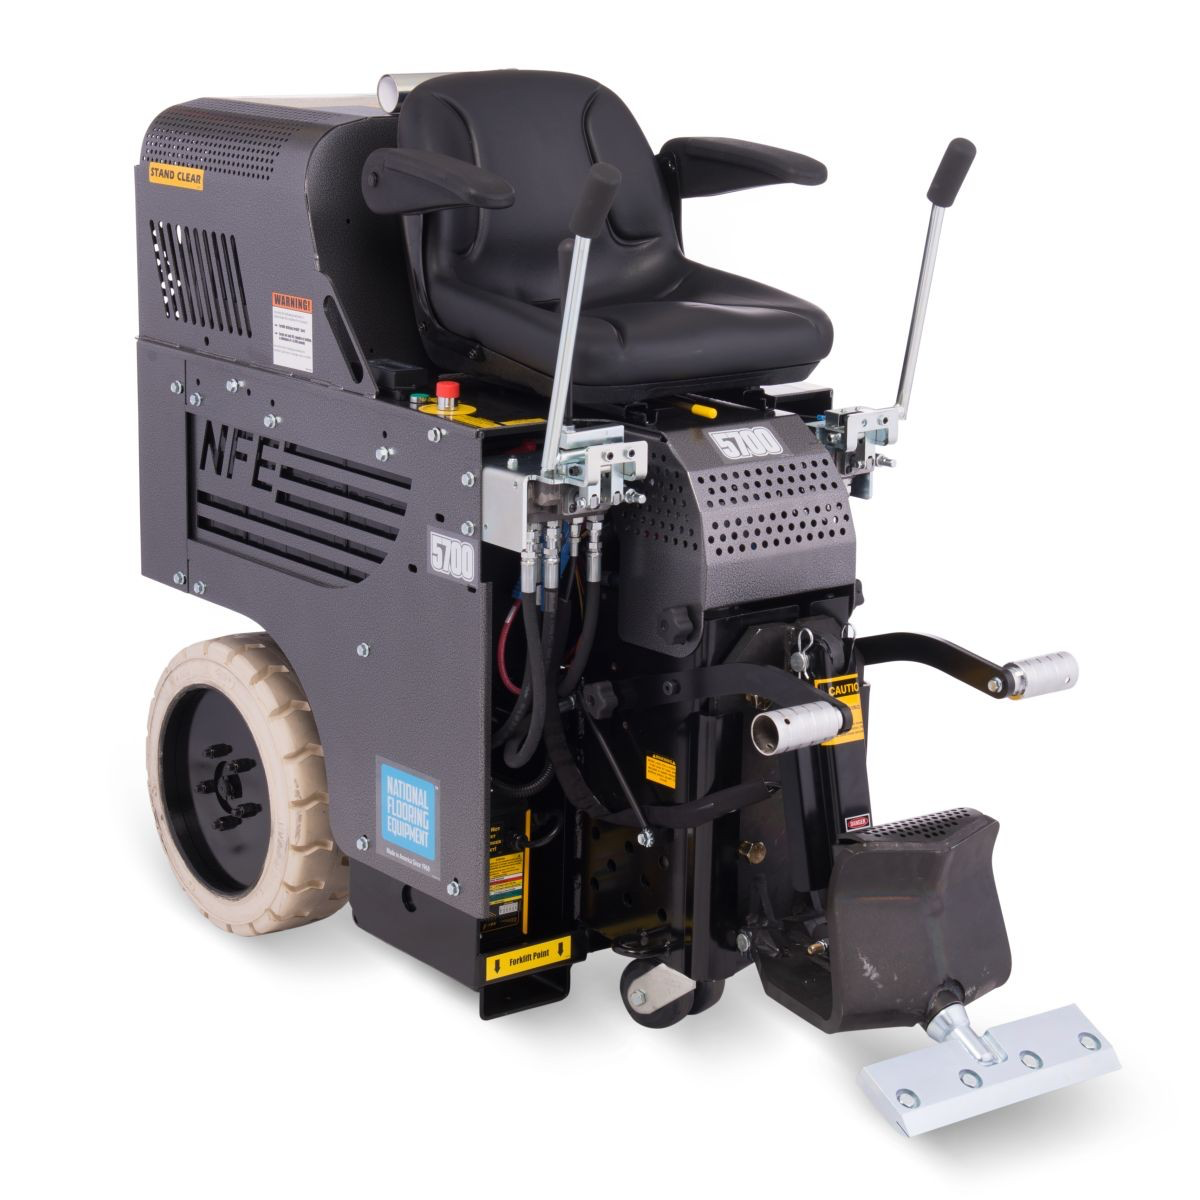 National 5700 All Day Battery Ride On Floor Removal Machine Lawn Mower Mower Push Lawn Mower